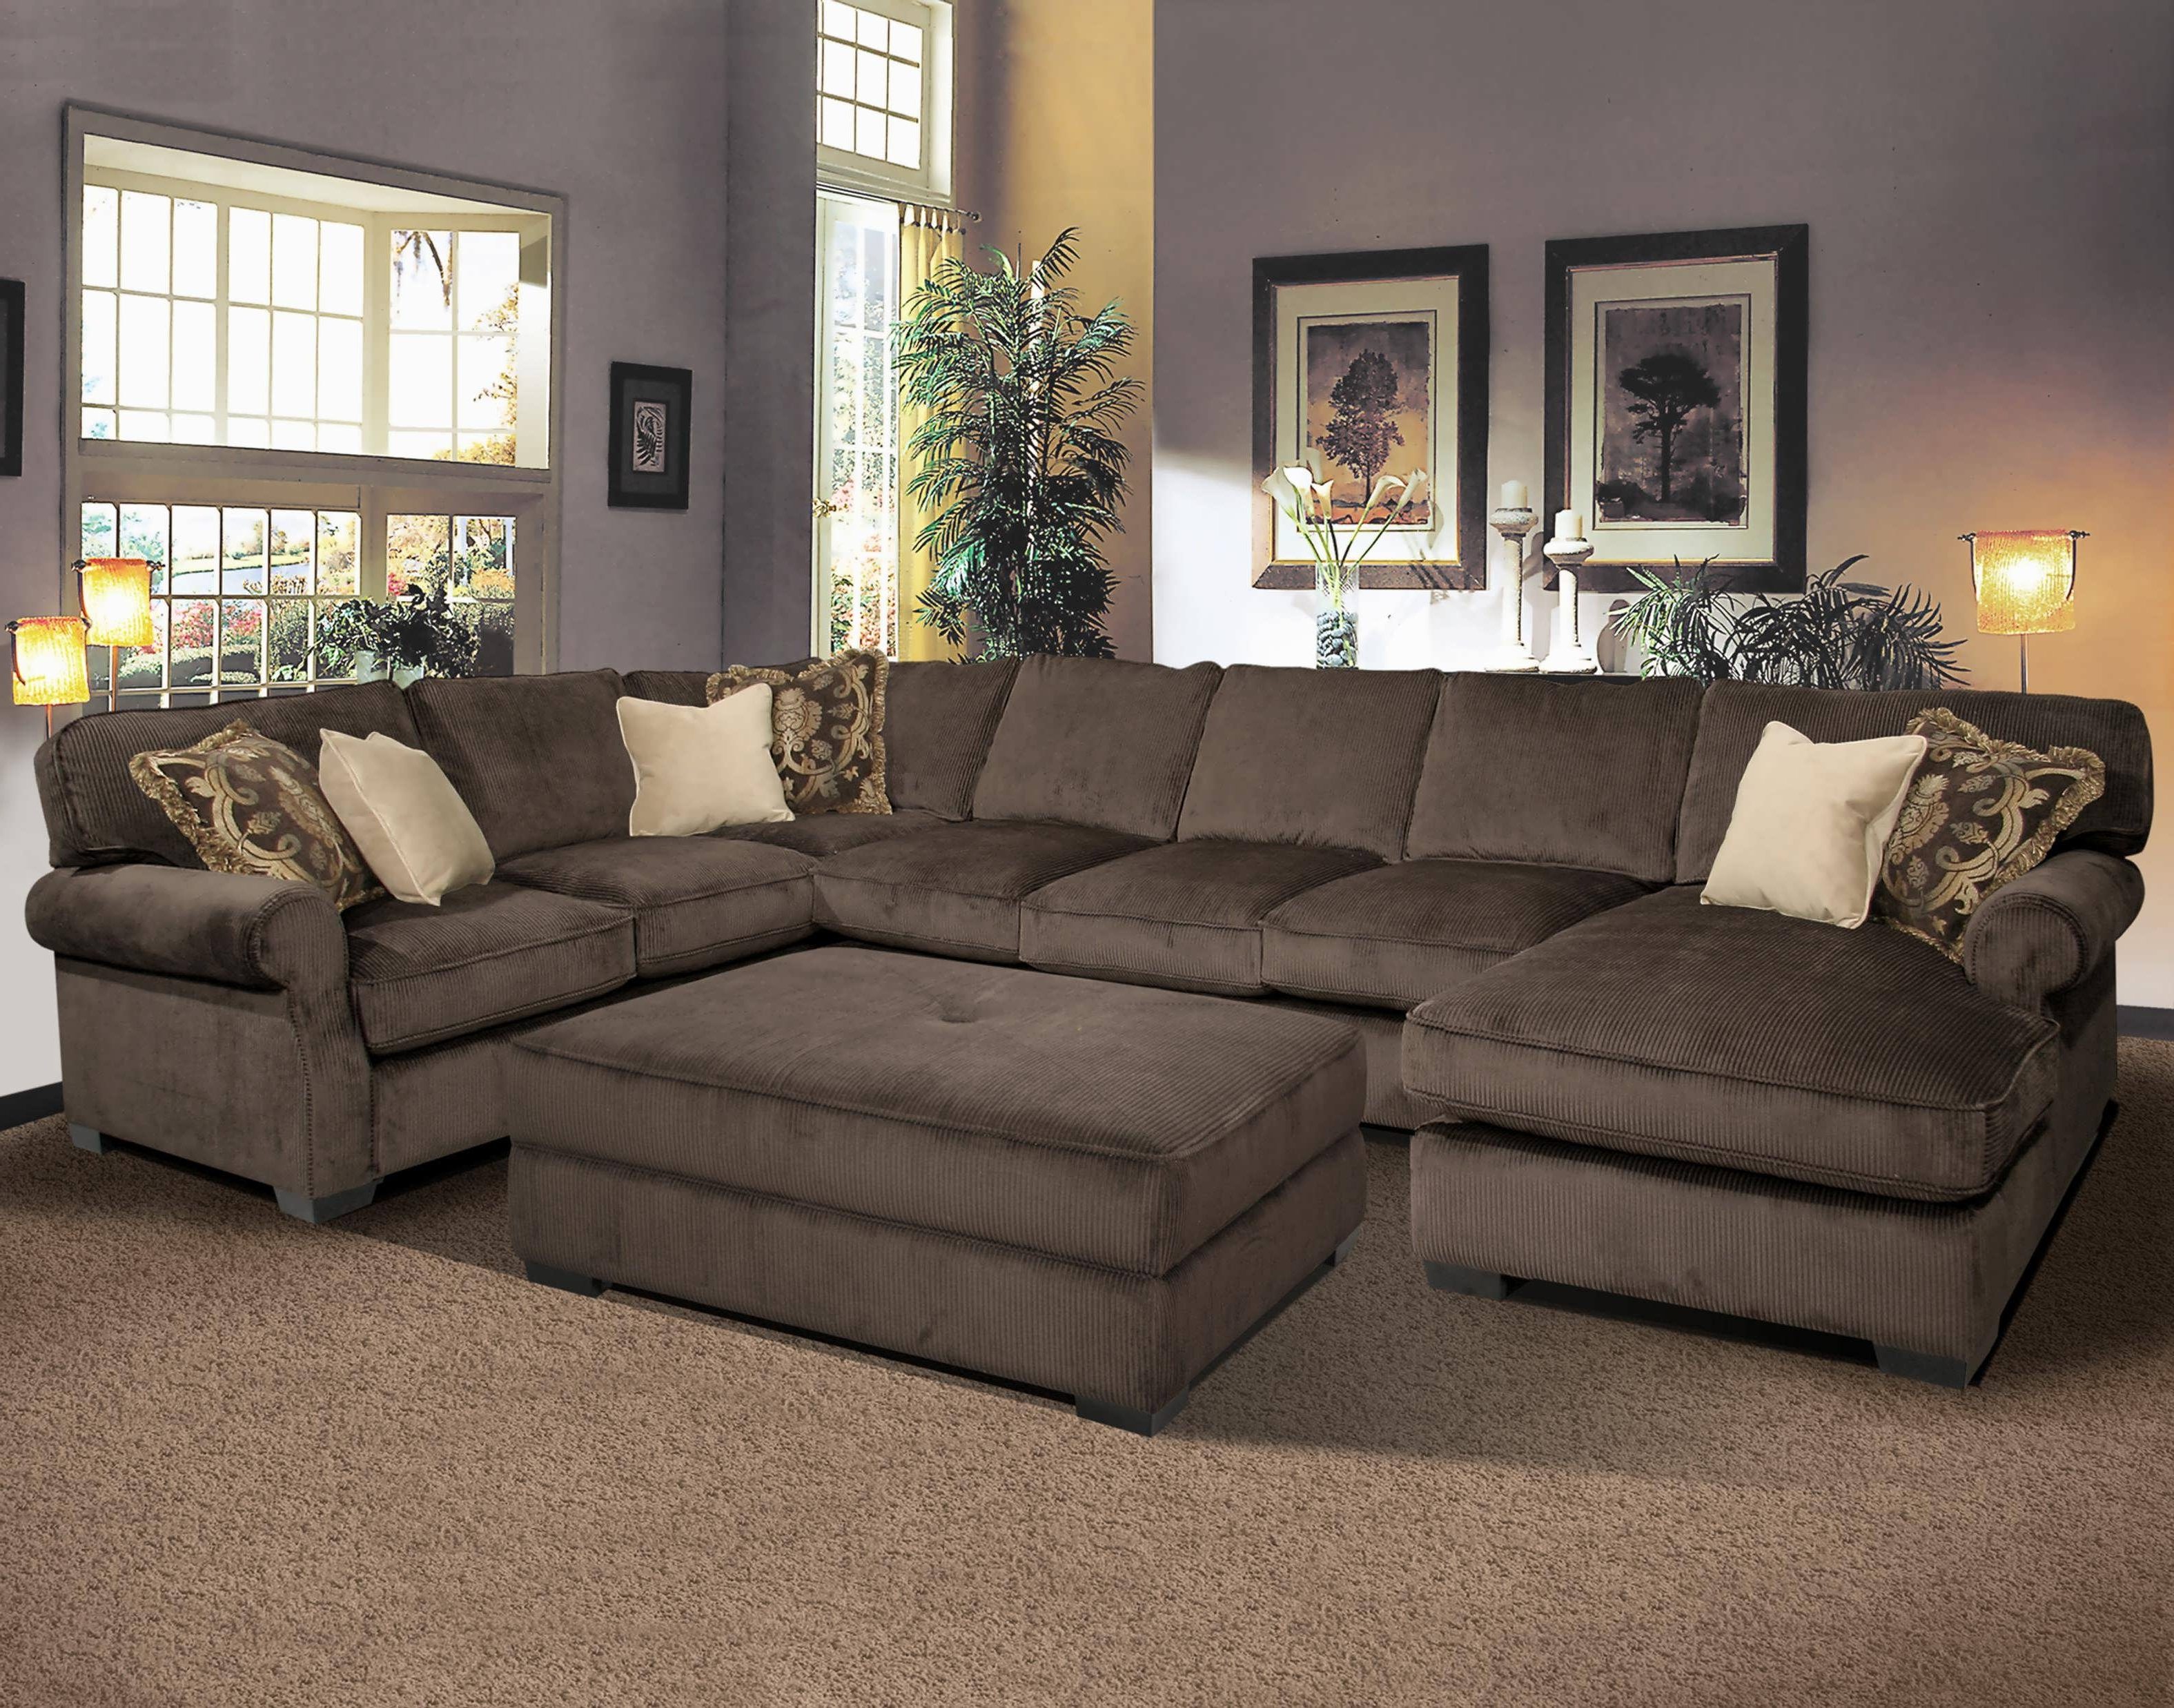 Trendy Sofa : Small Sectional With Chaise Gray Leather Sectional Blue Pertaining To Large Chaises (View 2 of 15)